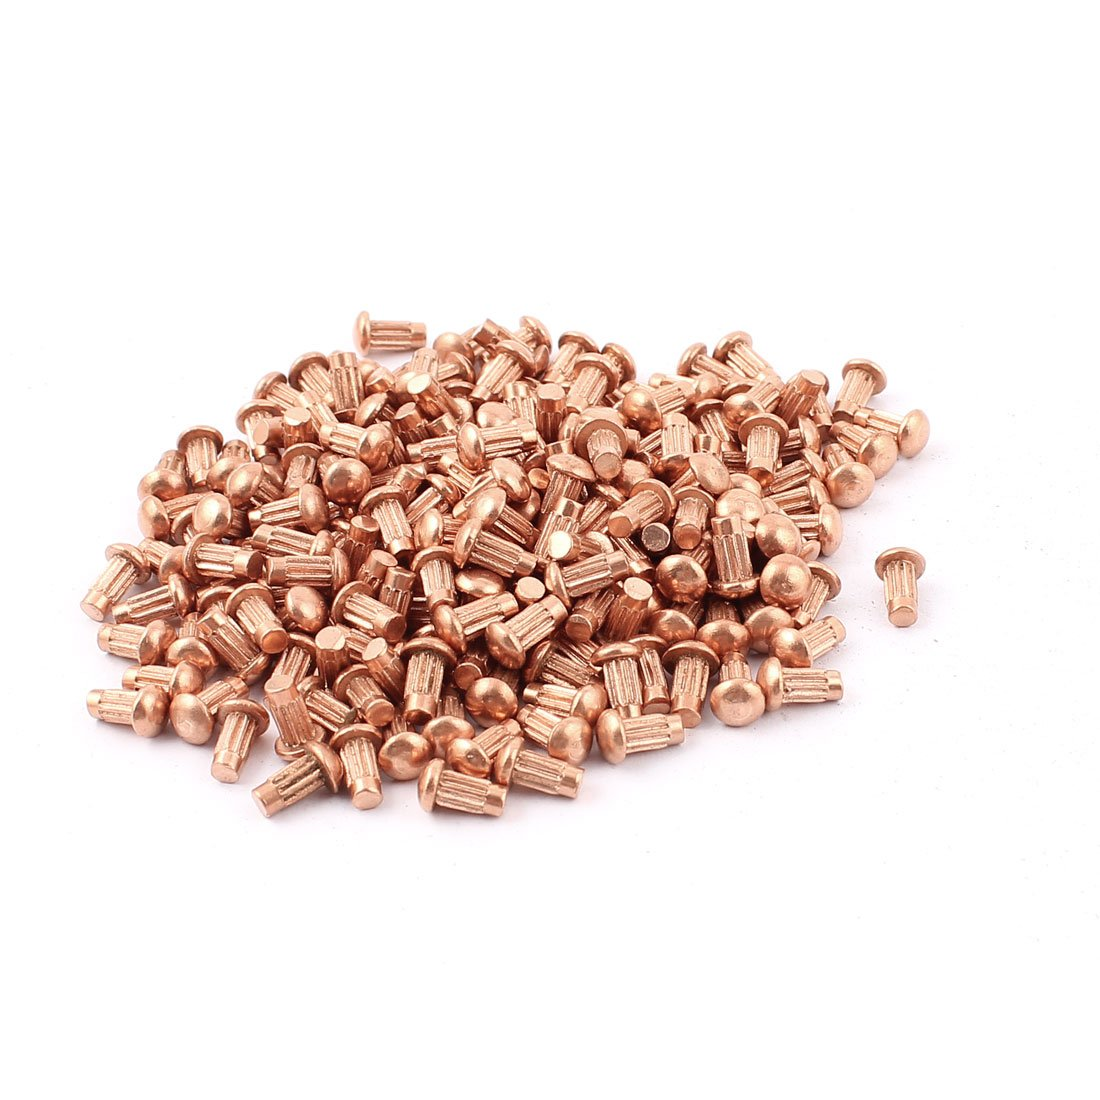 200 Pcs 1//8 x 1//4 Copper Round Head Solid Rivets Knurled Shanks